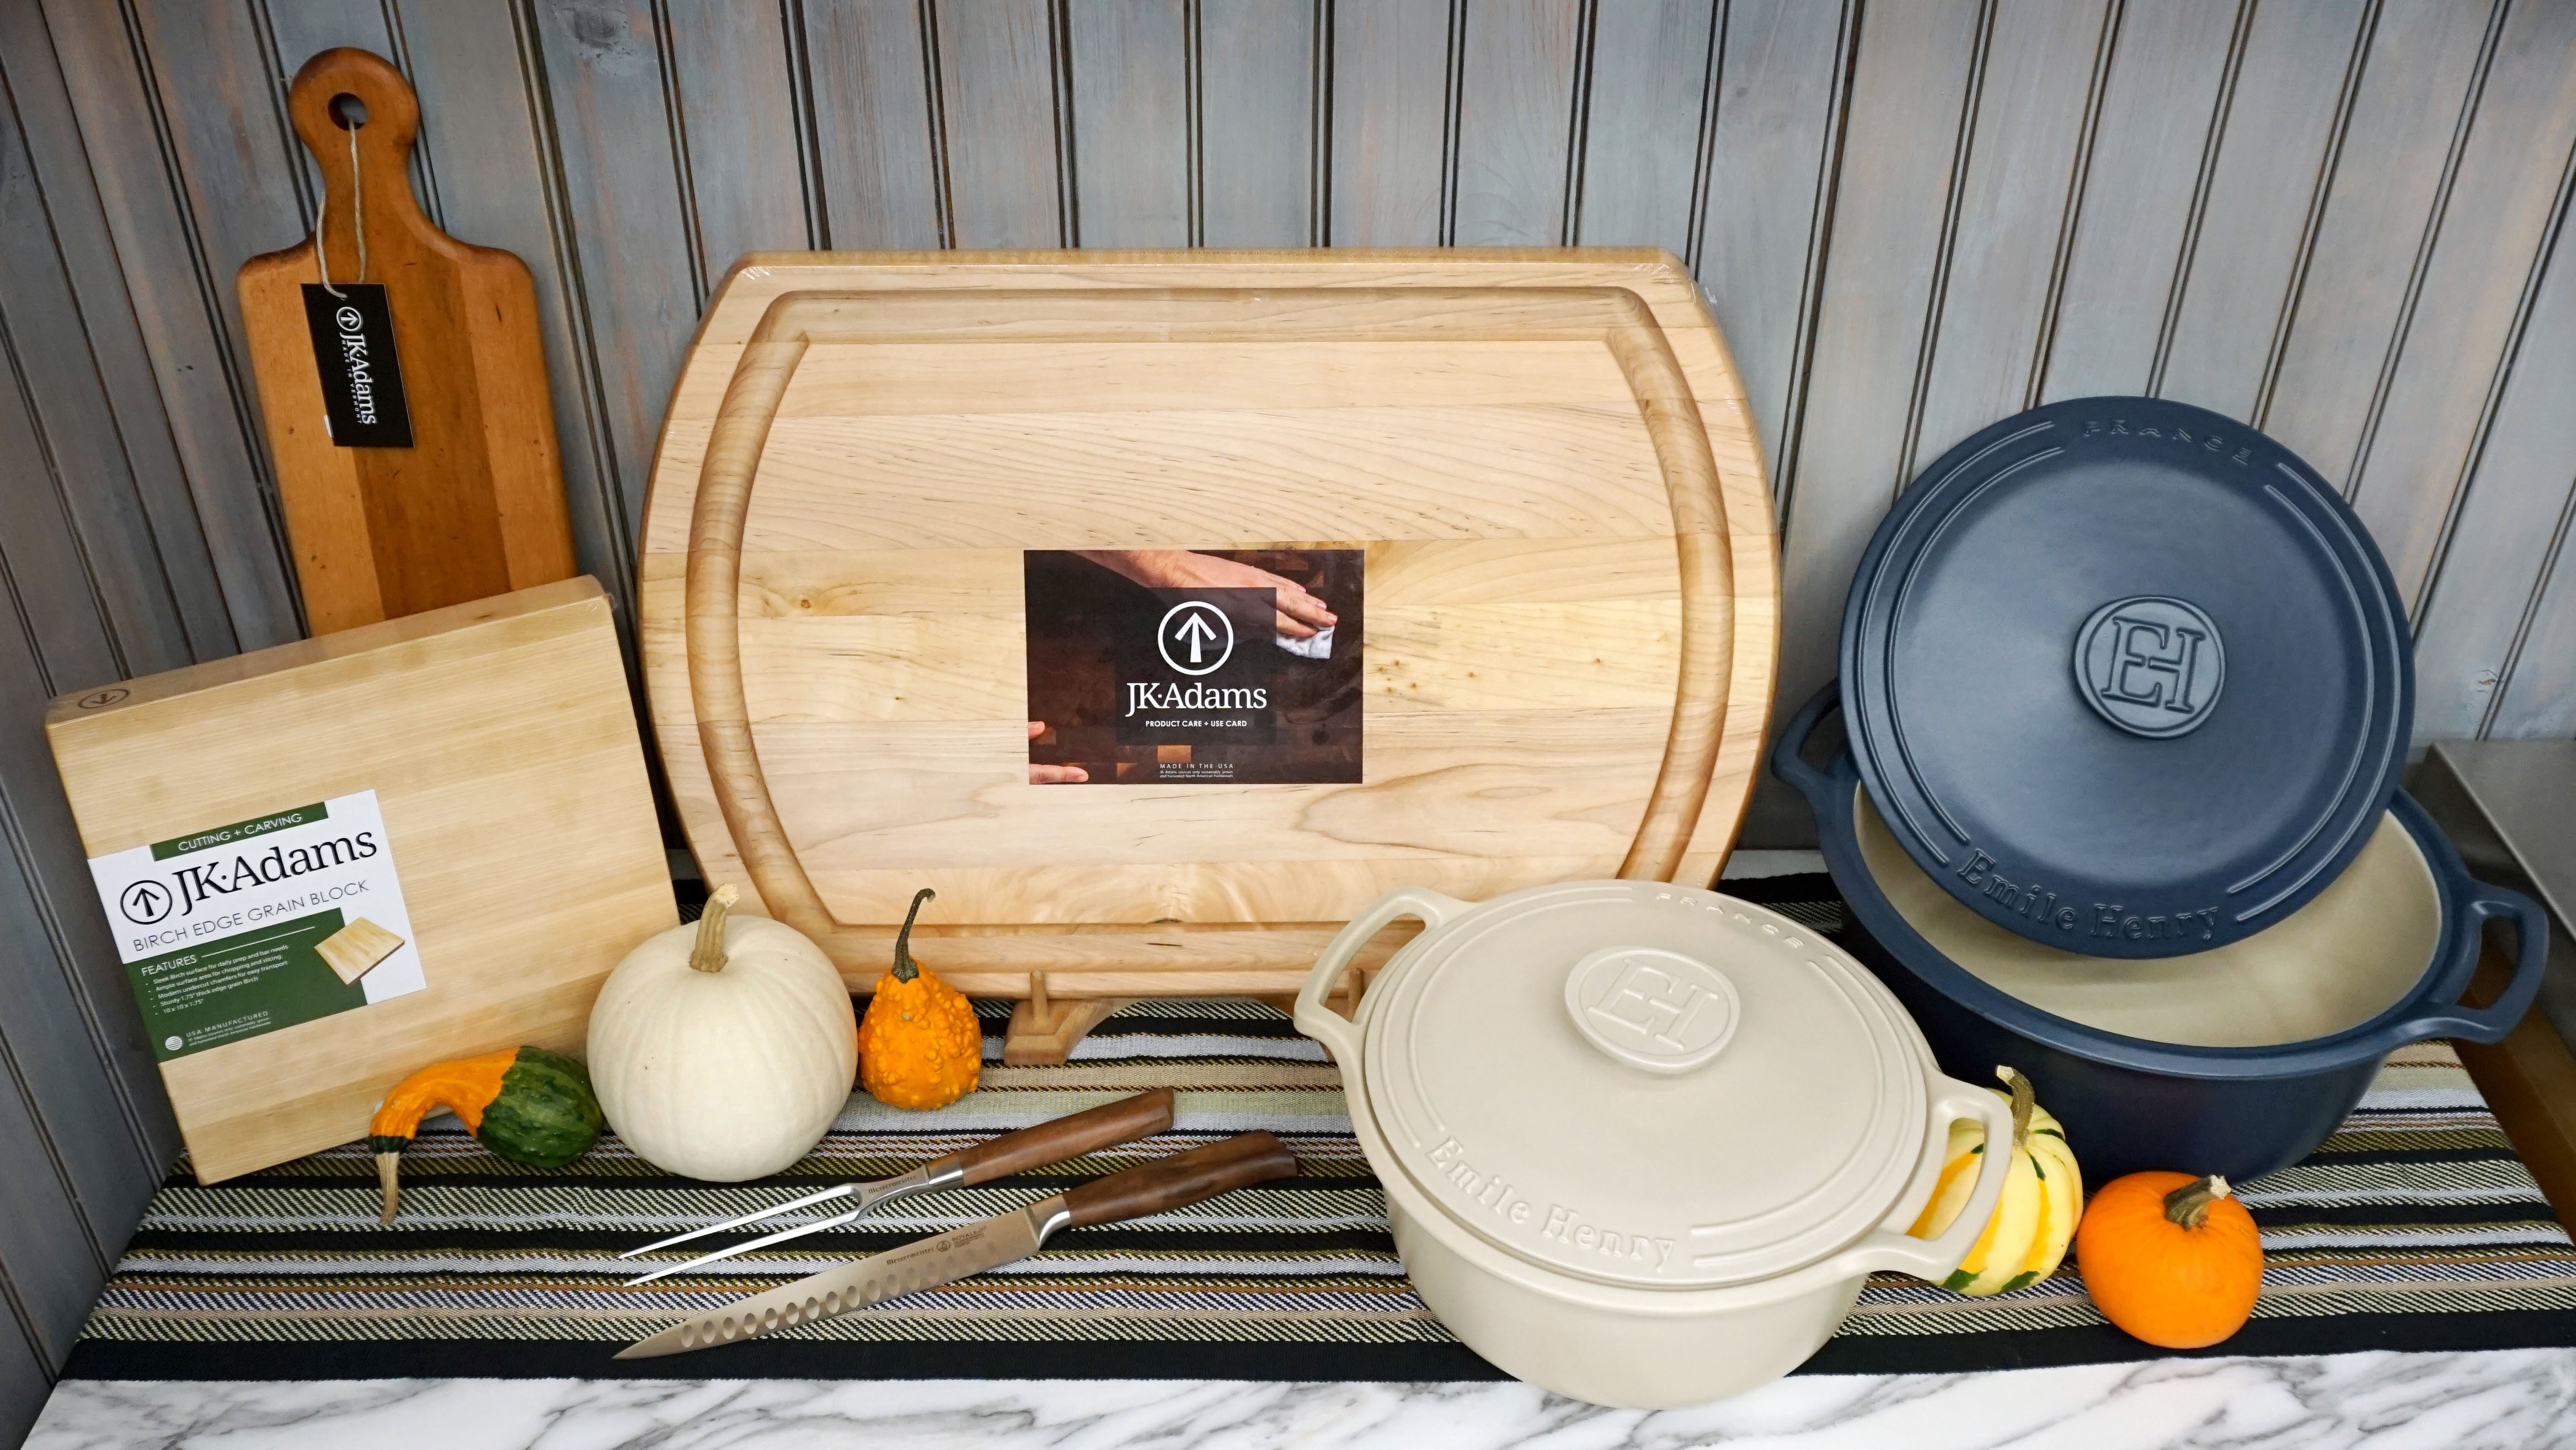 JK Adams x Emile Henry x Messermeister Fall Cookware Giveaway Giveaway Image